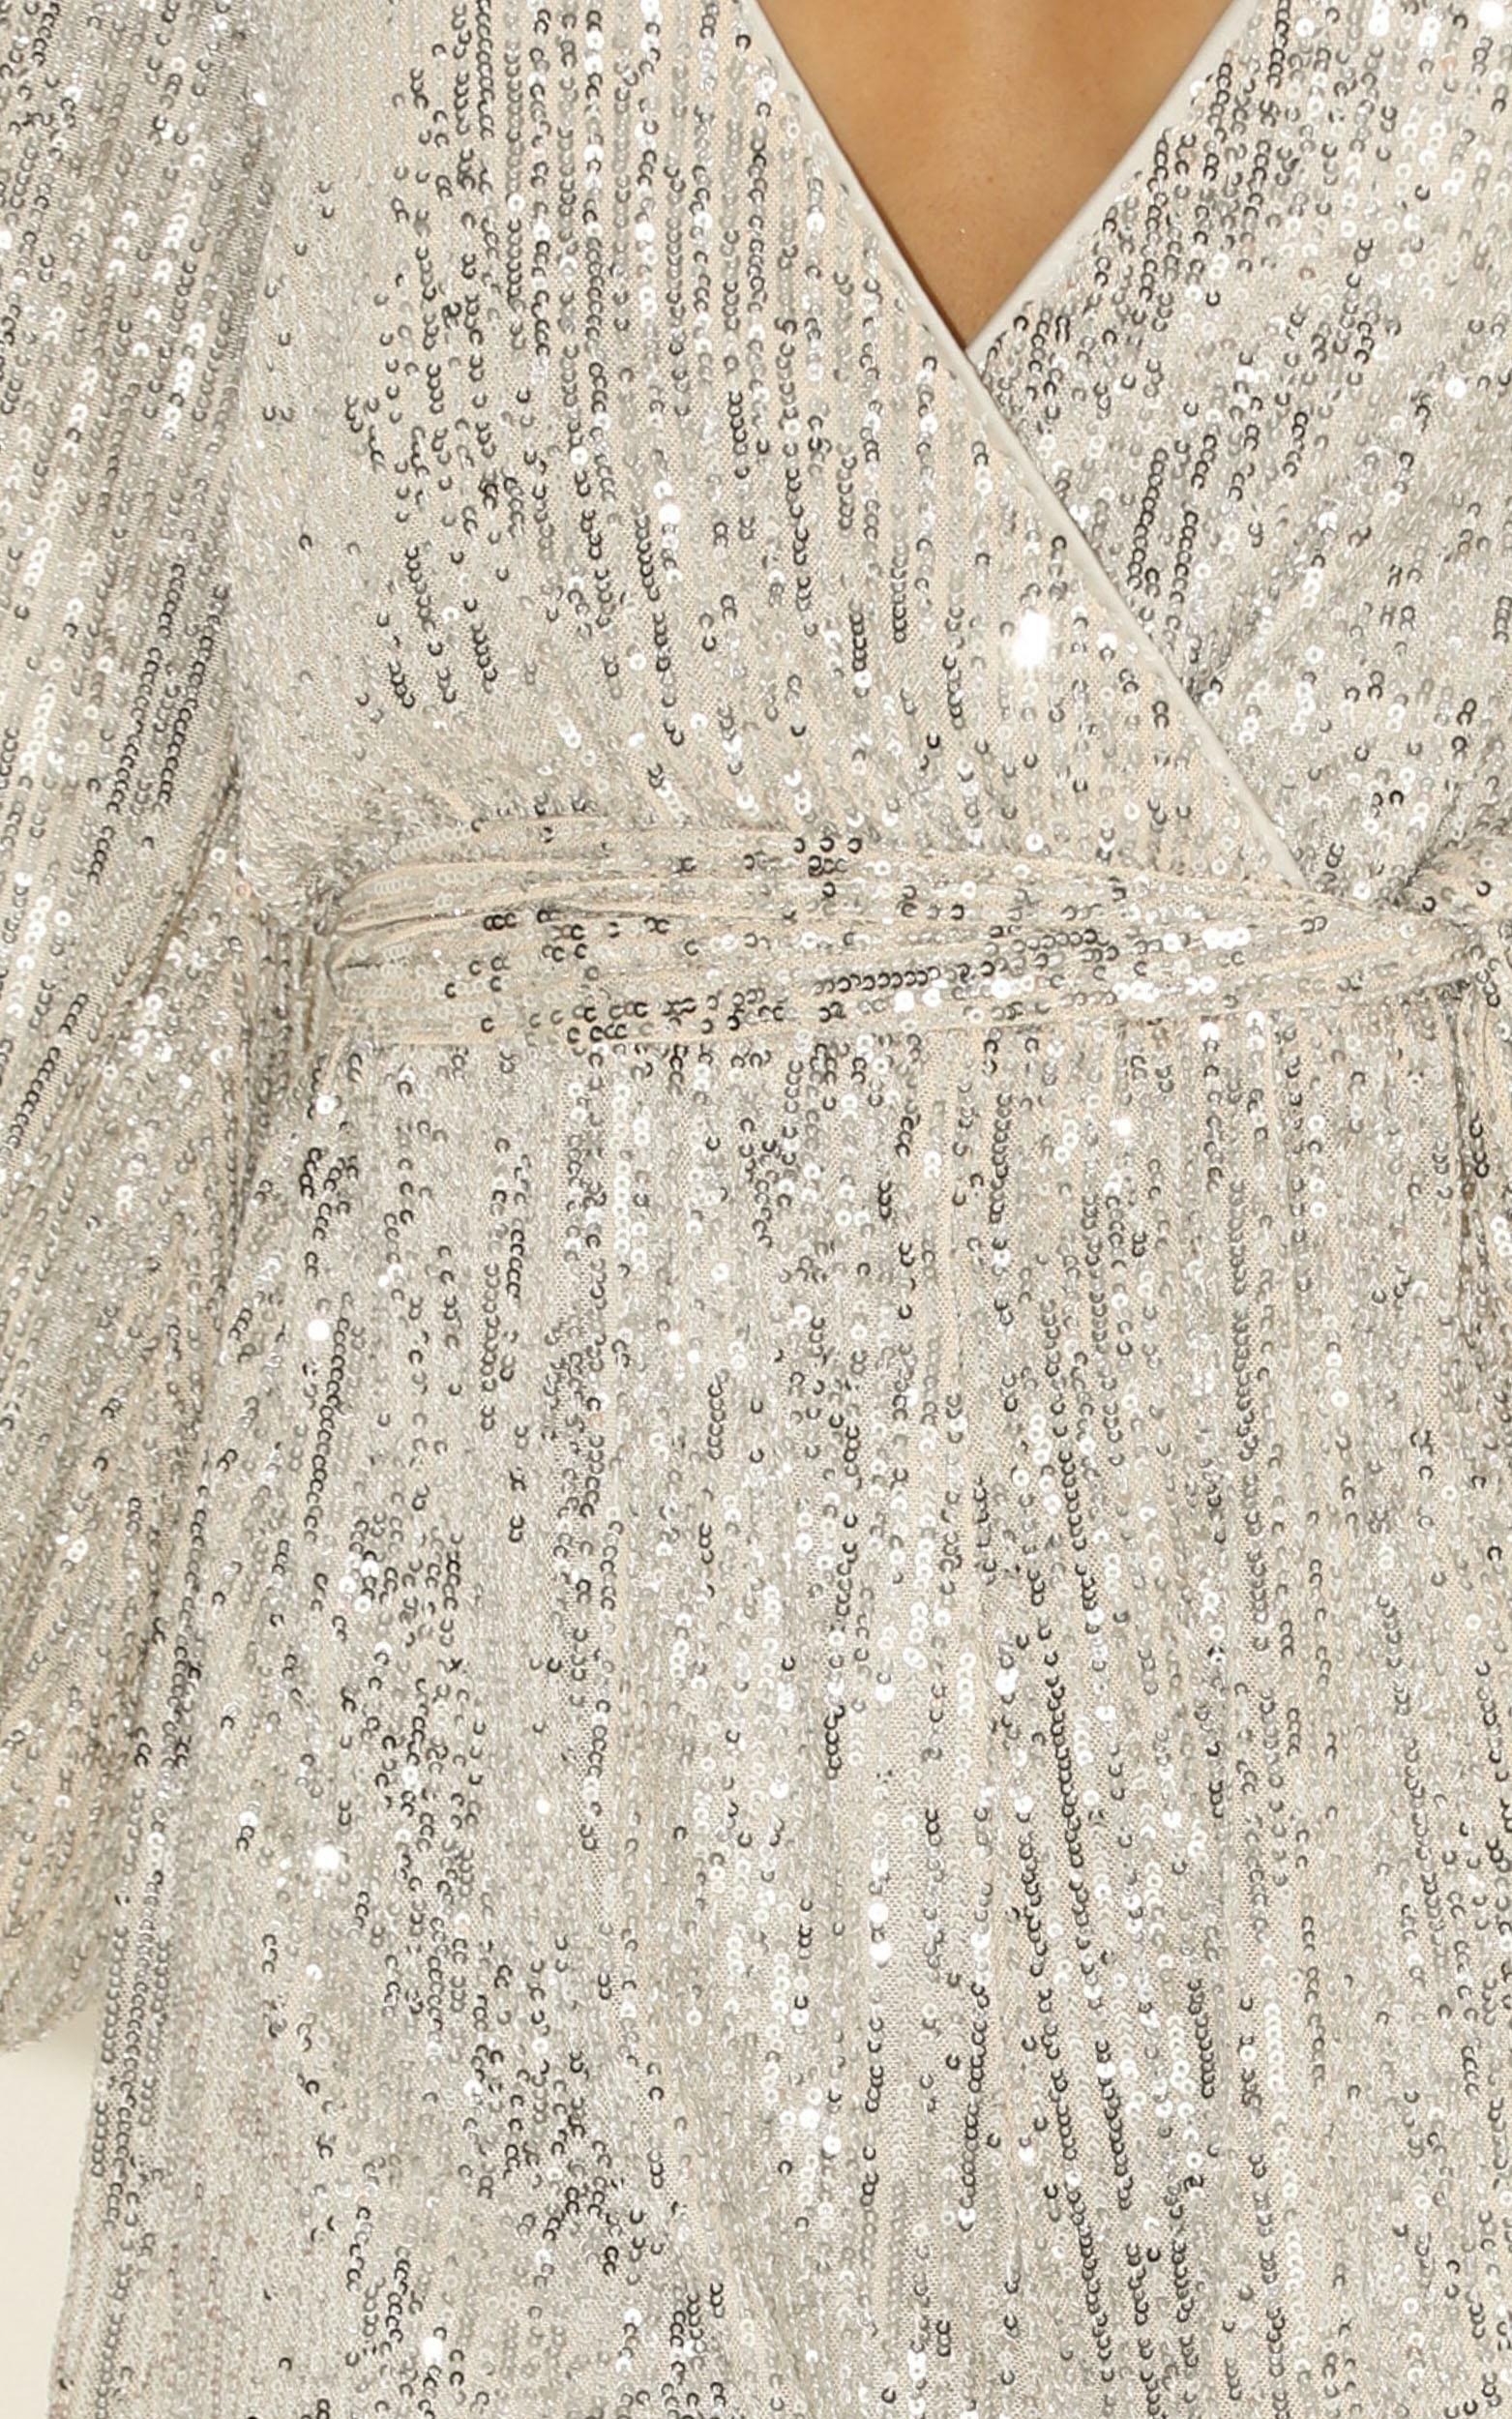 Cloud Lining playsuit in silver sequin - 12 (L), Silver, hi-res image number null